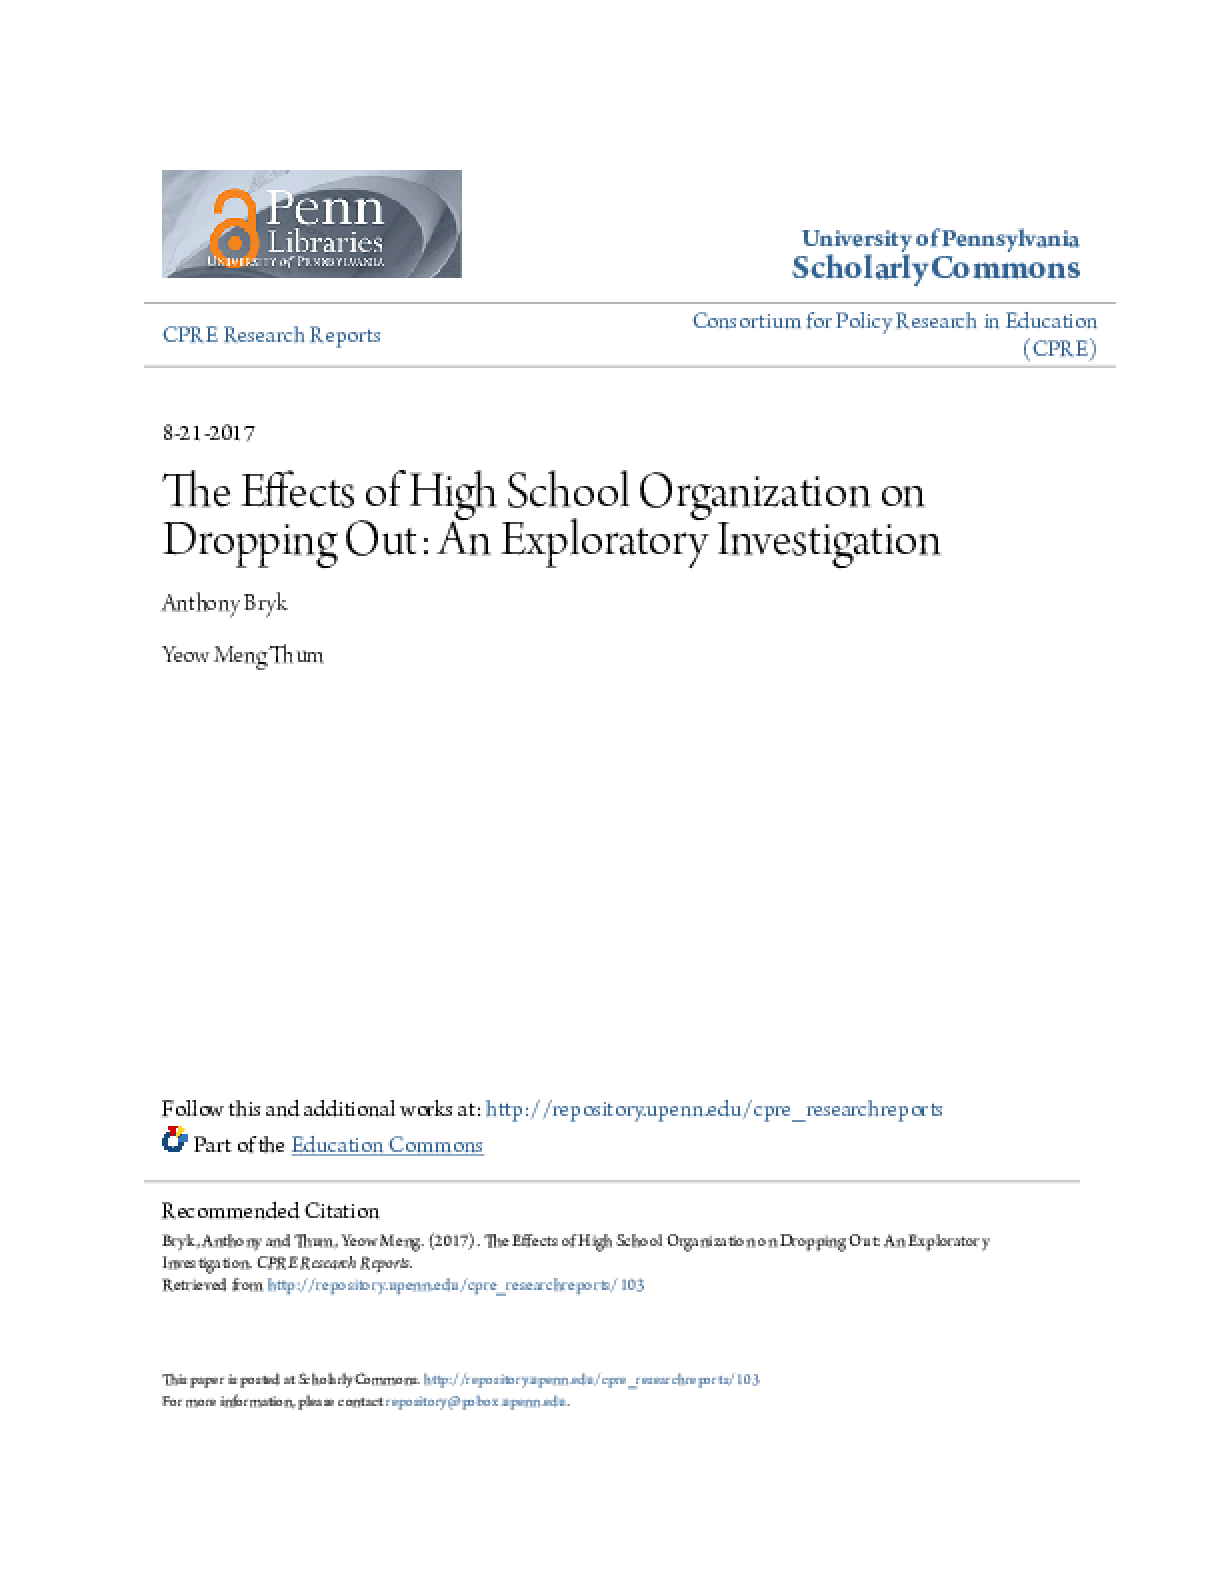 The Effects of High School Organization on Dropping Out: An Exploratory Investigation